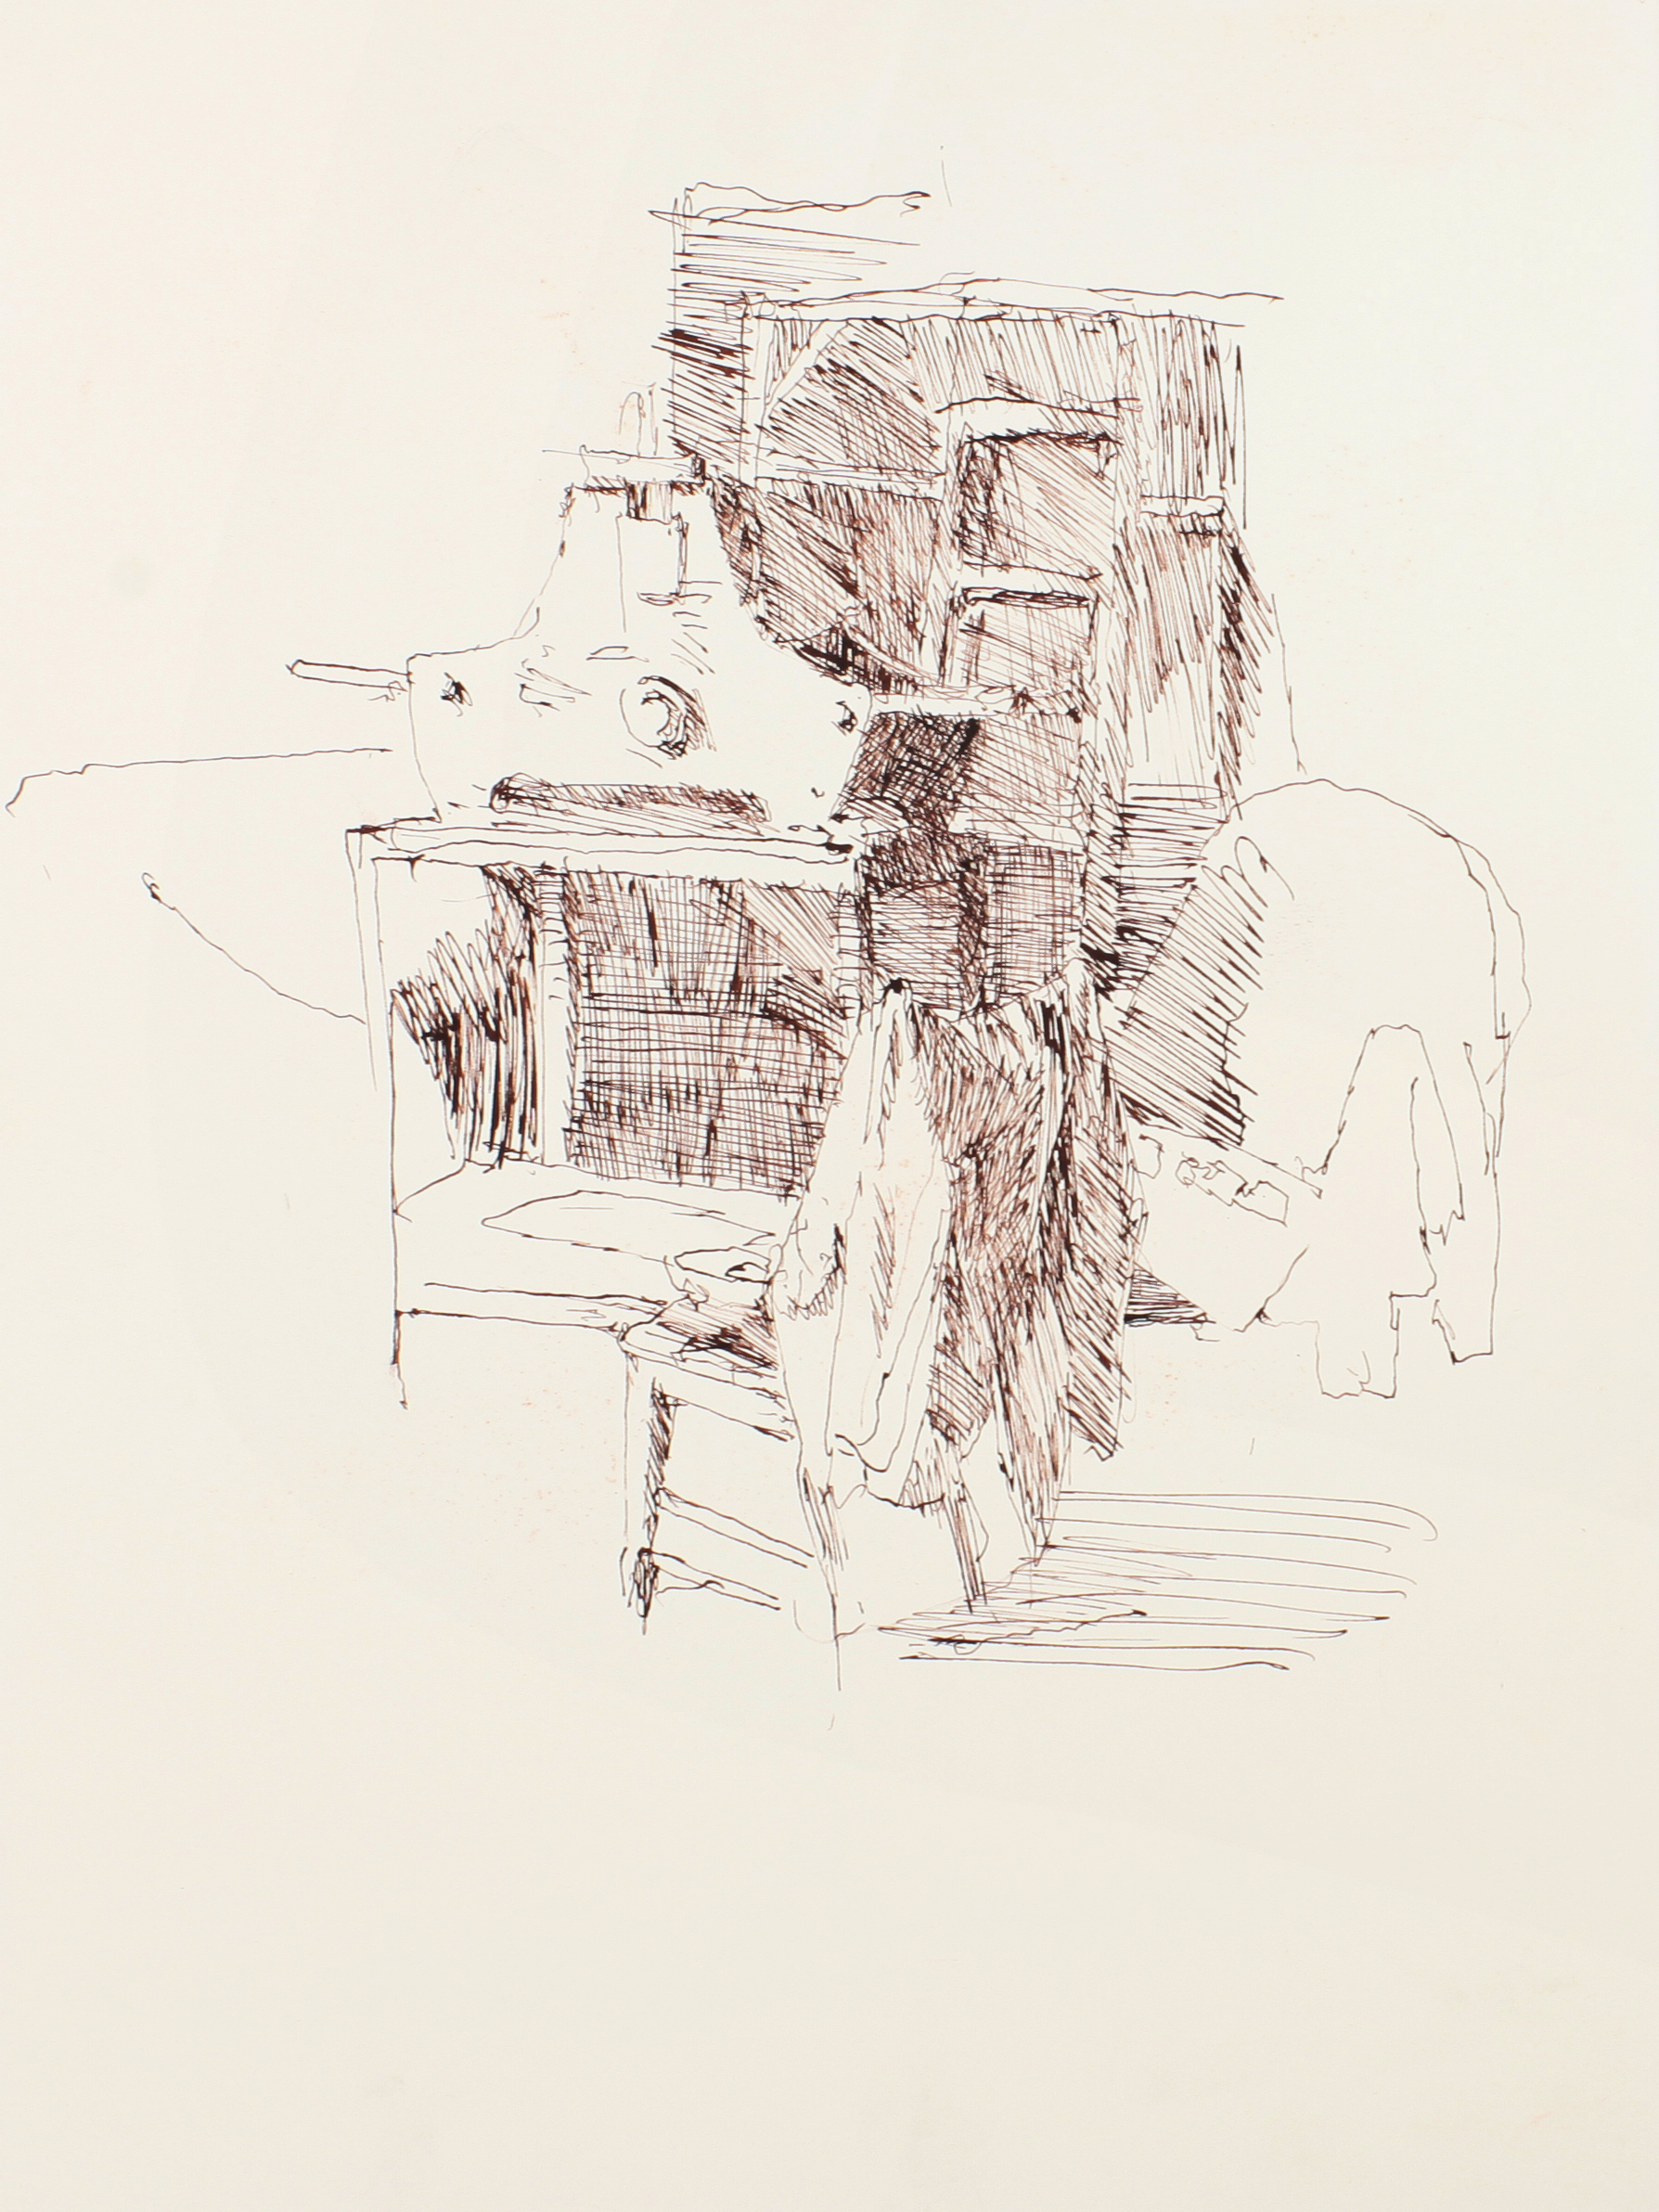 1990s_Studio_with_Ladder_and_Press_ink_on_paper_15x11in_WPF106.jpg